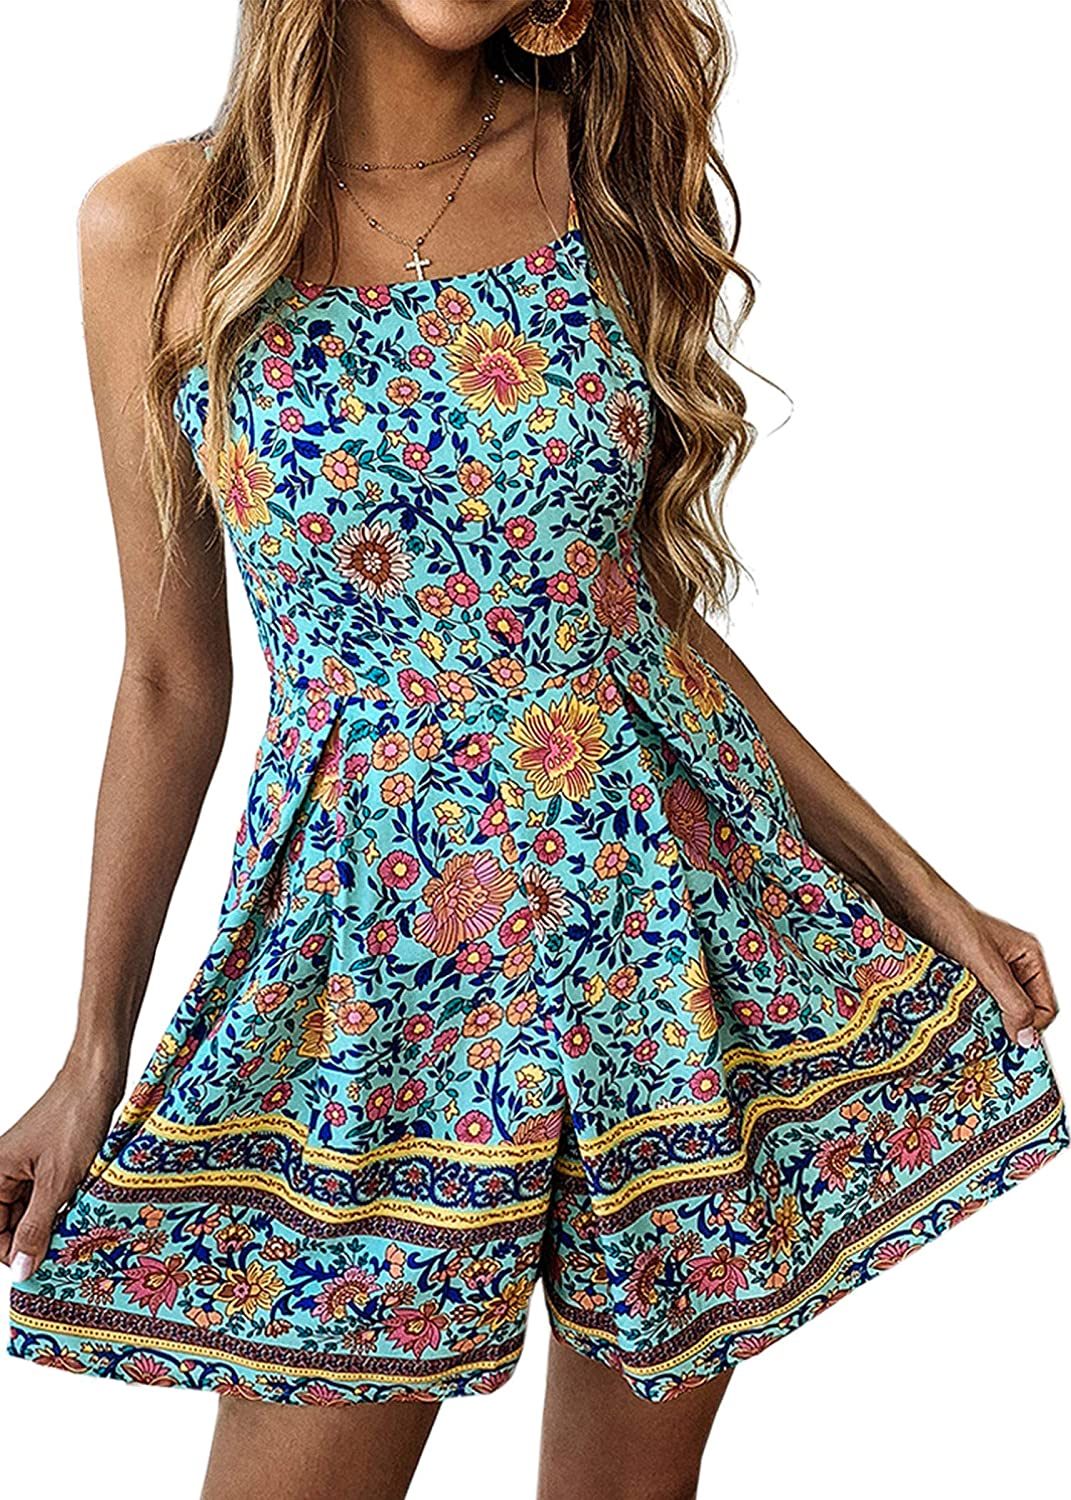 d919f9e3693 Amazon.com  Angashion Women s Romper - Sexy Boho Floral Spaghetti Strap  Pleated Short Jumpsuit Rompers with Belt  Clothing